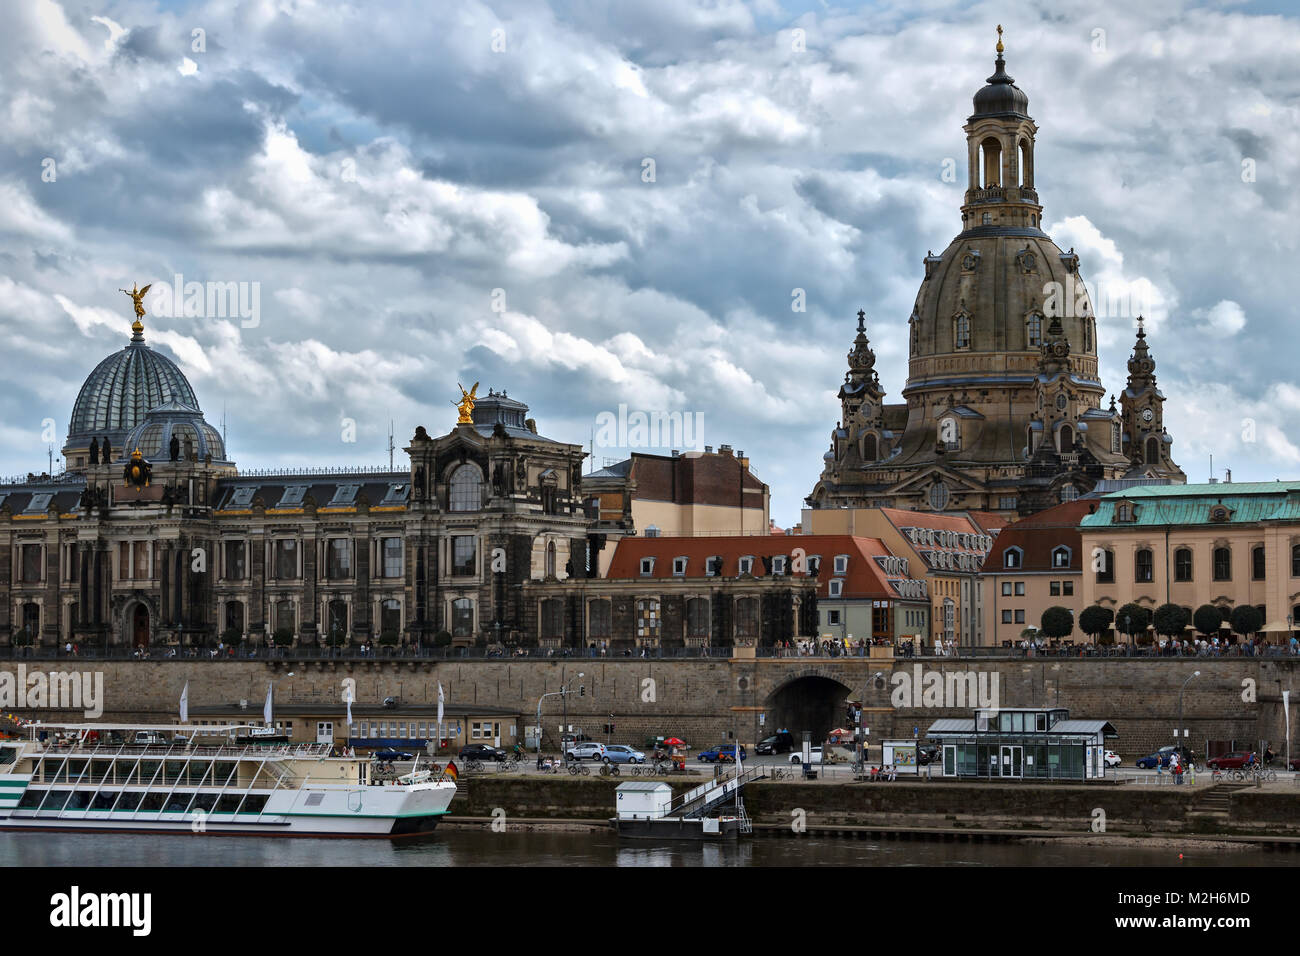 View of the historical centre of Dresden across river Elbe. - Stock Image